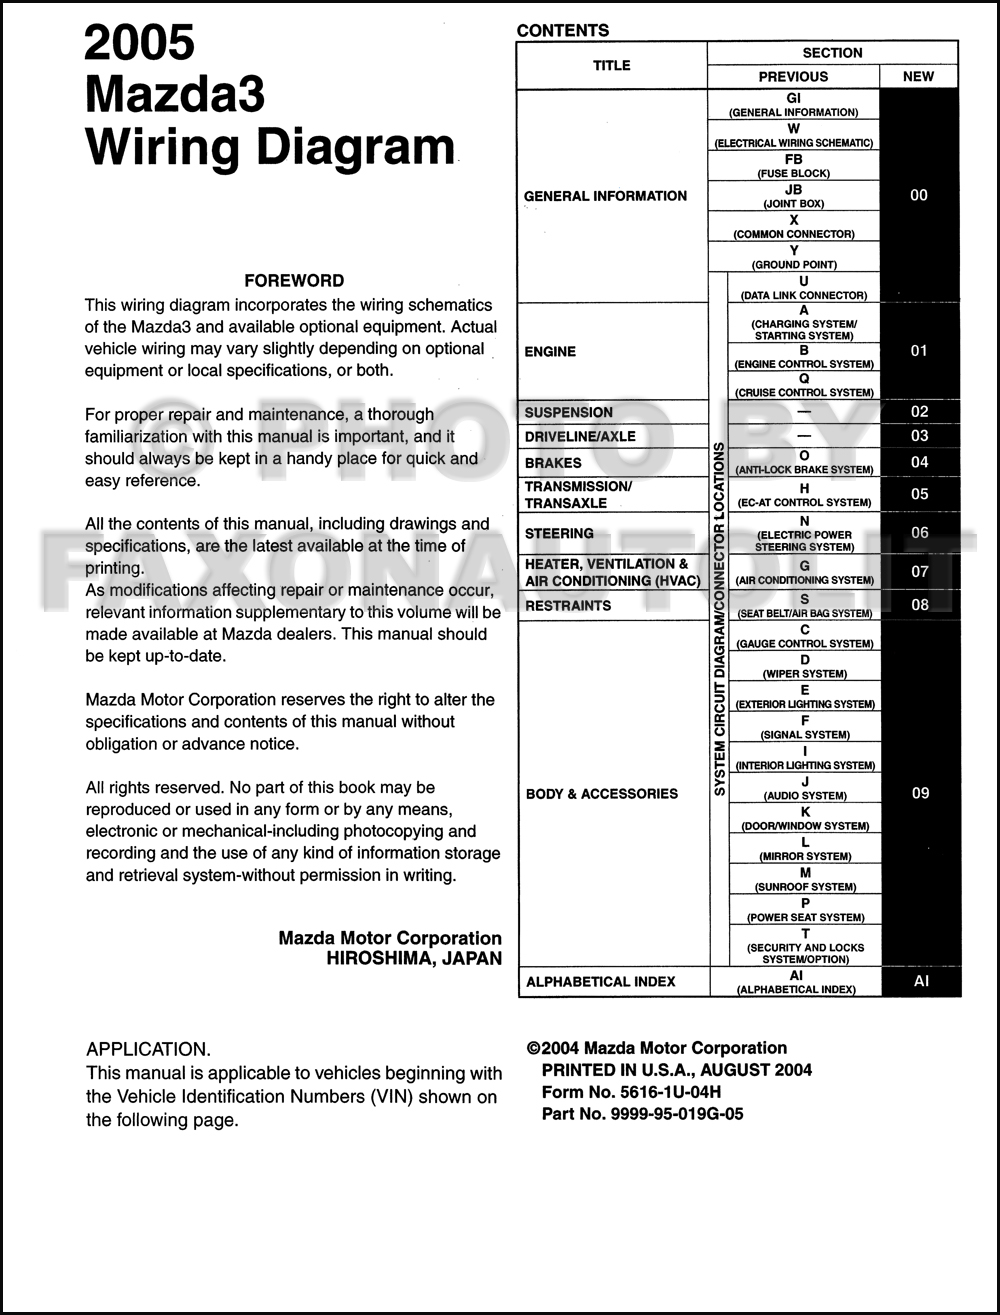 DIAGRAM] Volkswagen Wiring Diagram 2005 FULL Version HD Quality Diagram 2005  - ASPOSEDIAGRAM.AGORASUP.FRAgora Sup